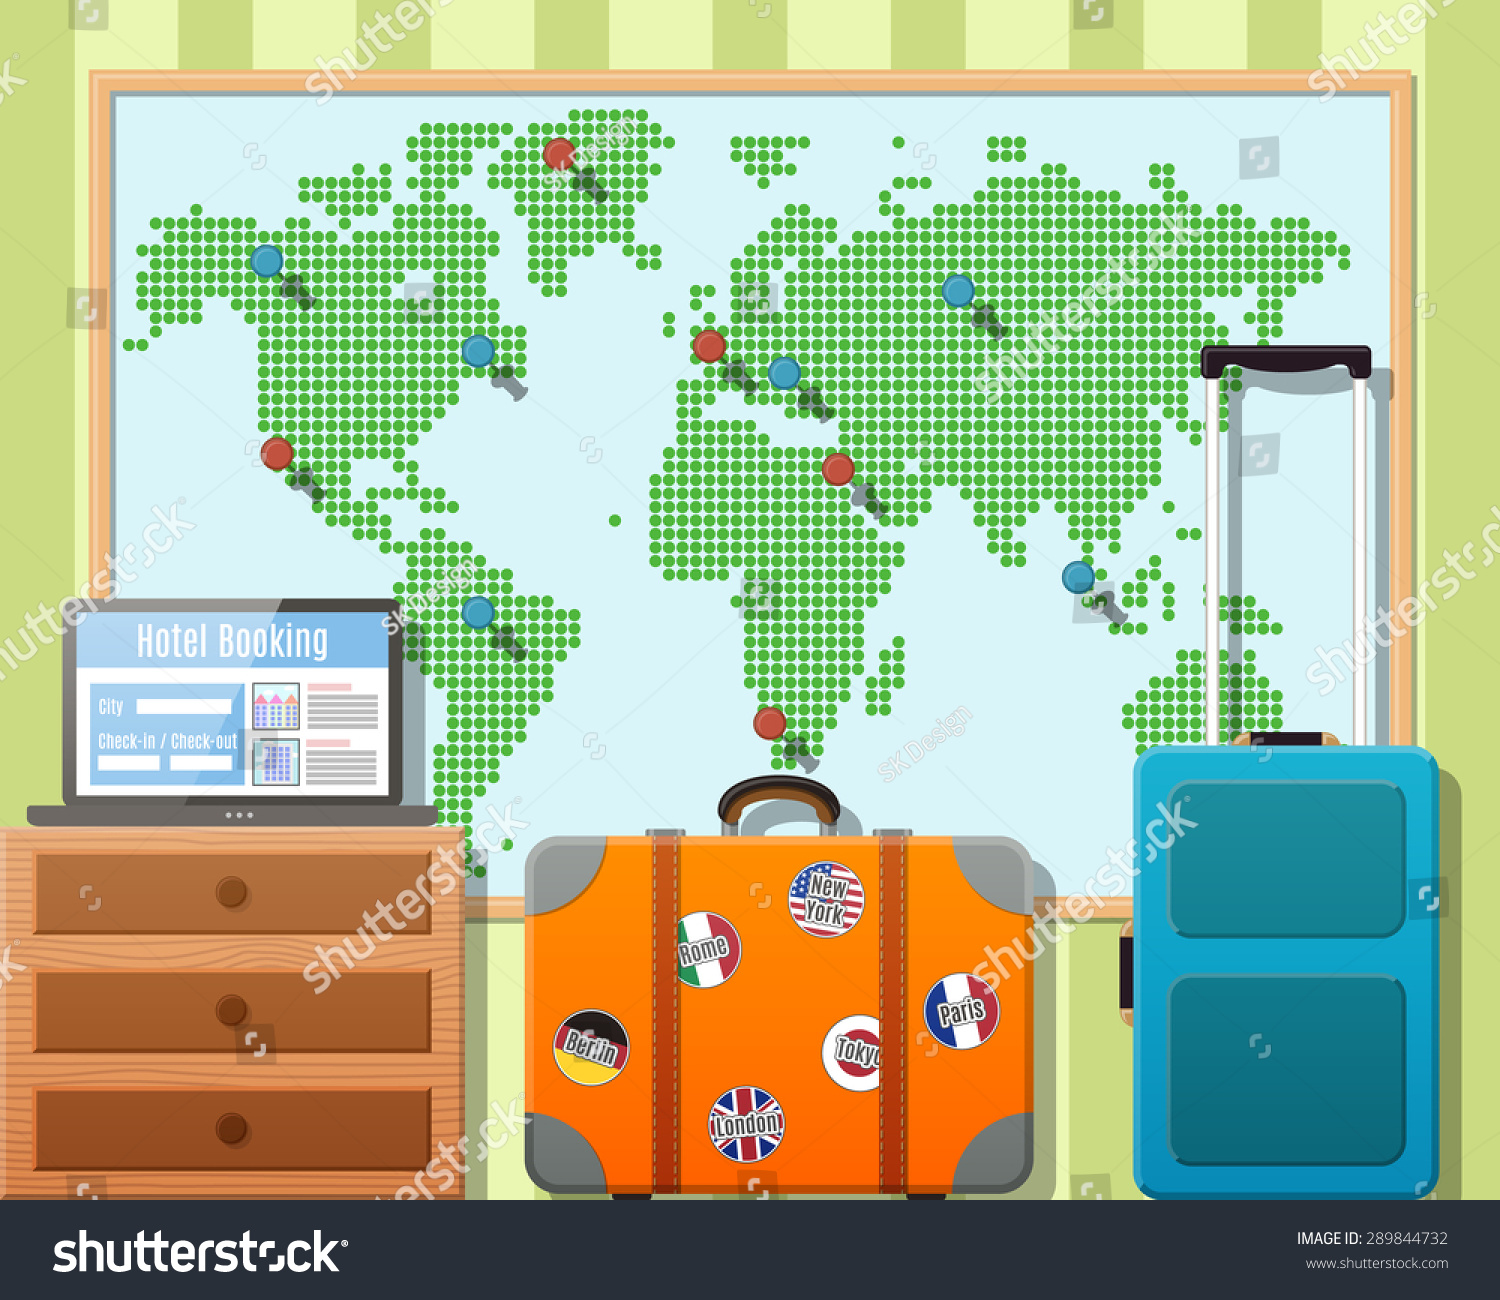 Travel suitcases stickers world map travel stock vector 289844732 travel suitcases with stickers and world map travel around the world concept vector flat gumiabroncs Images